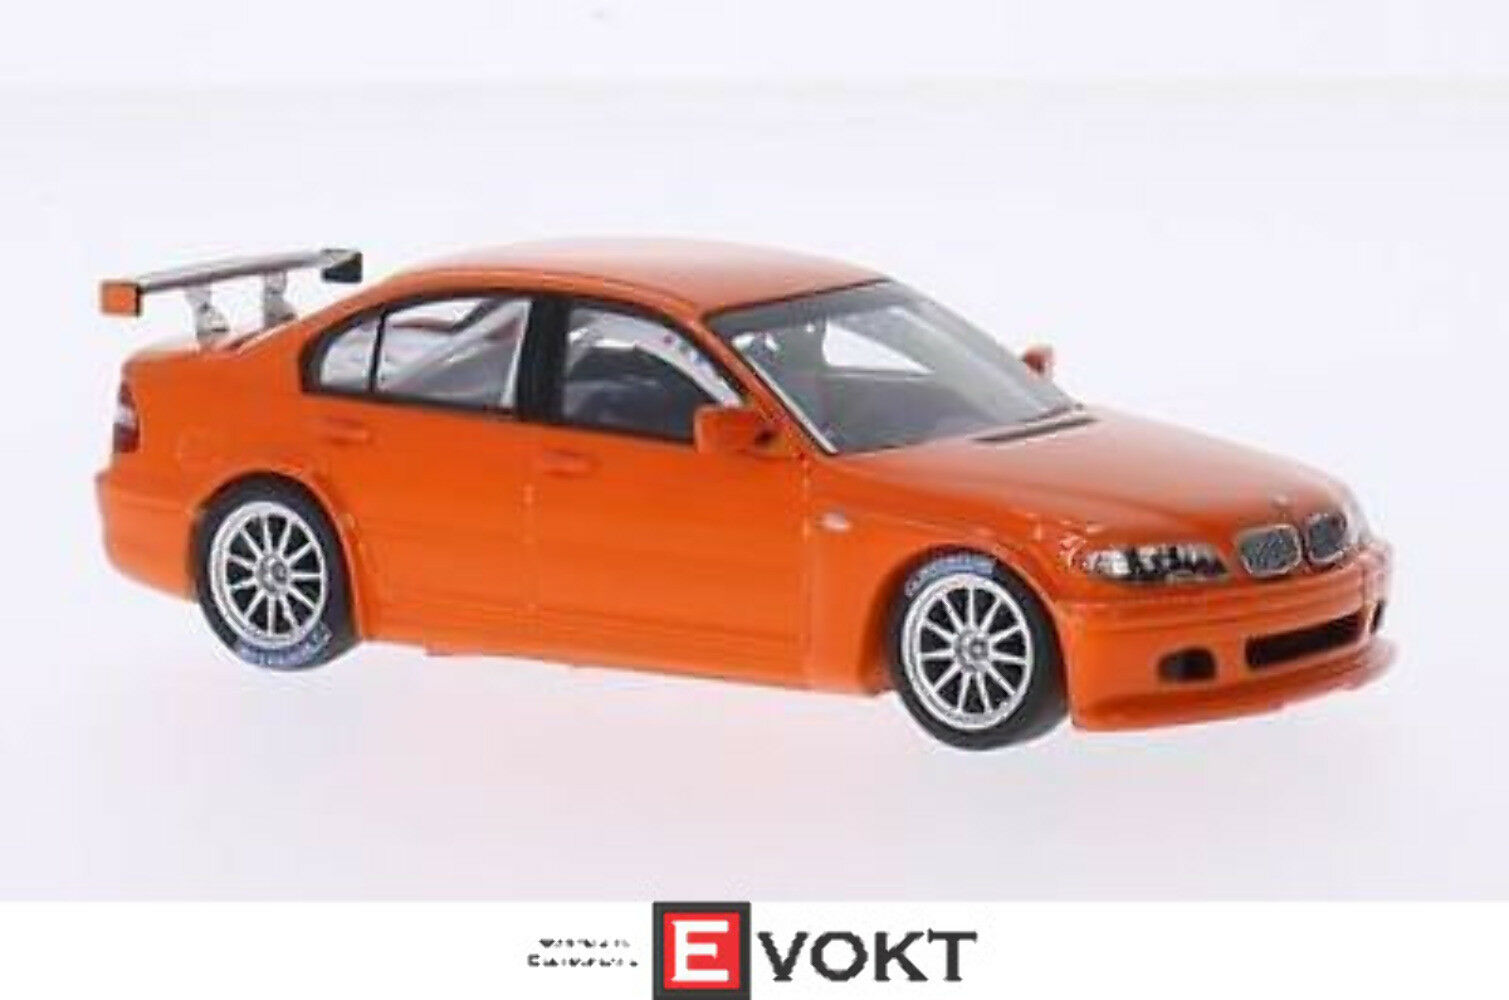 BMW 320i (E46   4), orange, 1 43, Minichamps